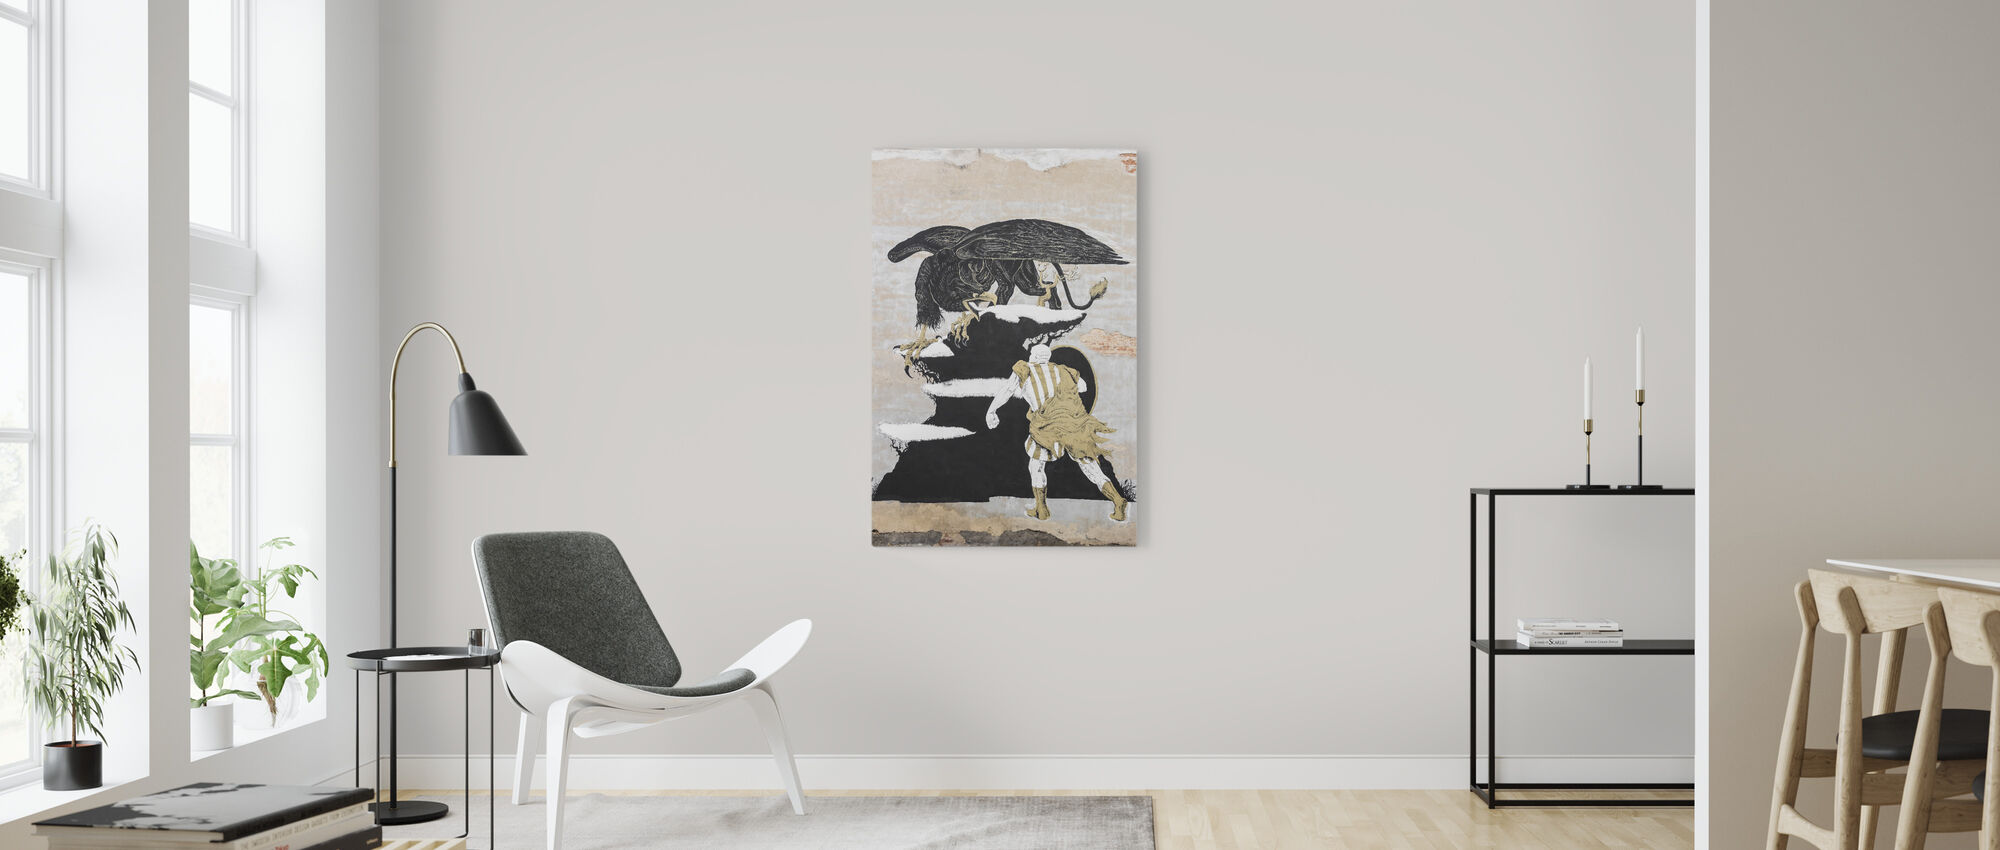 Street Art Painting - Canvas print - Living Room